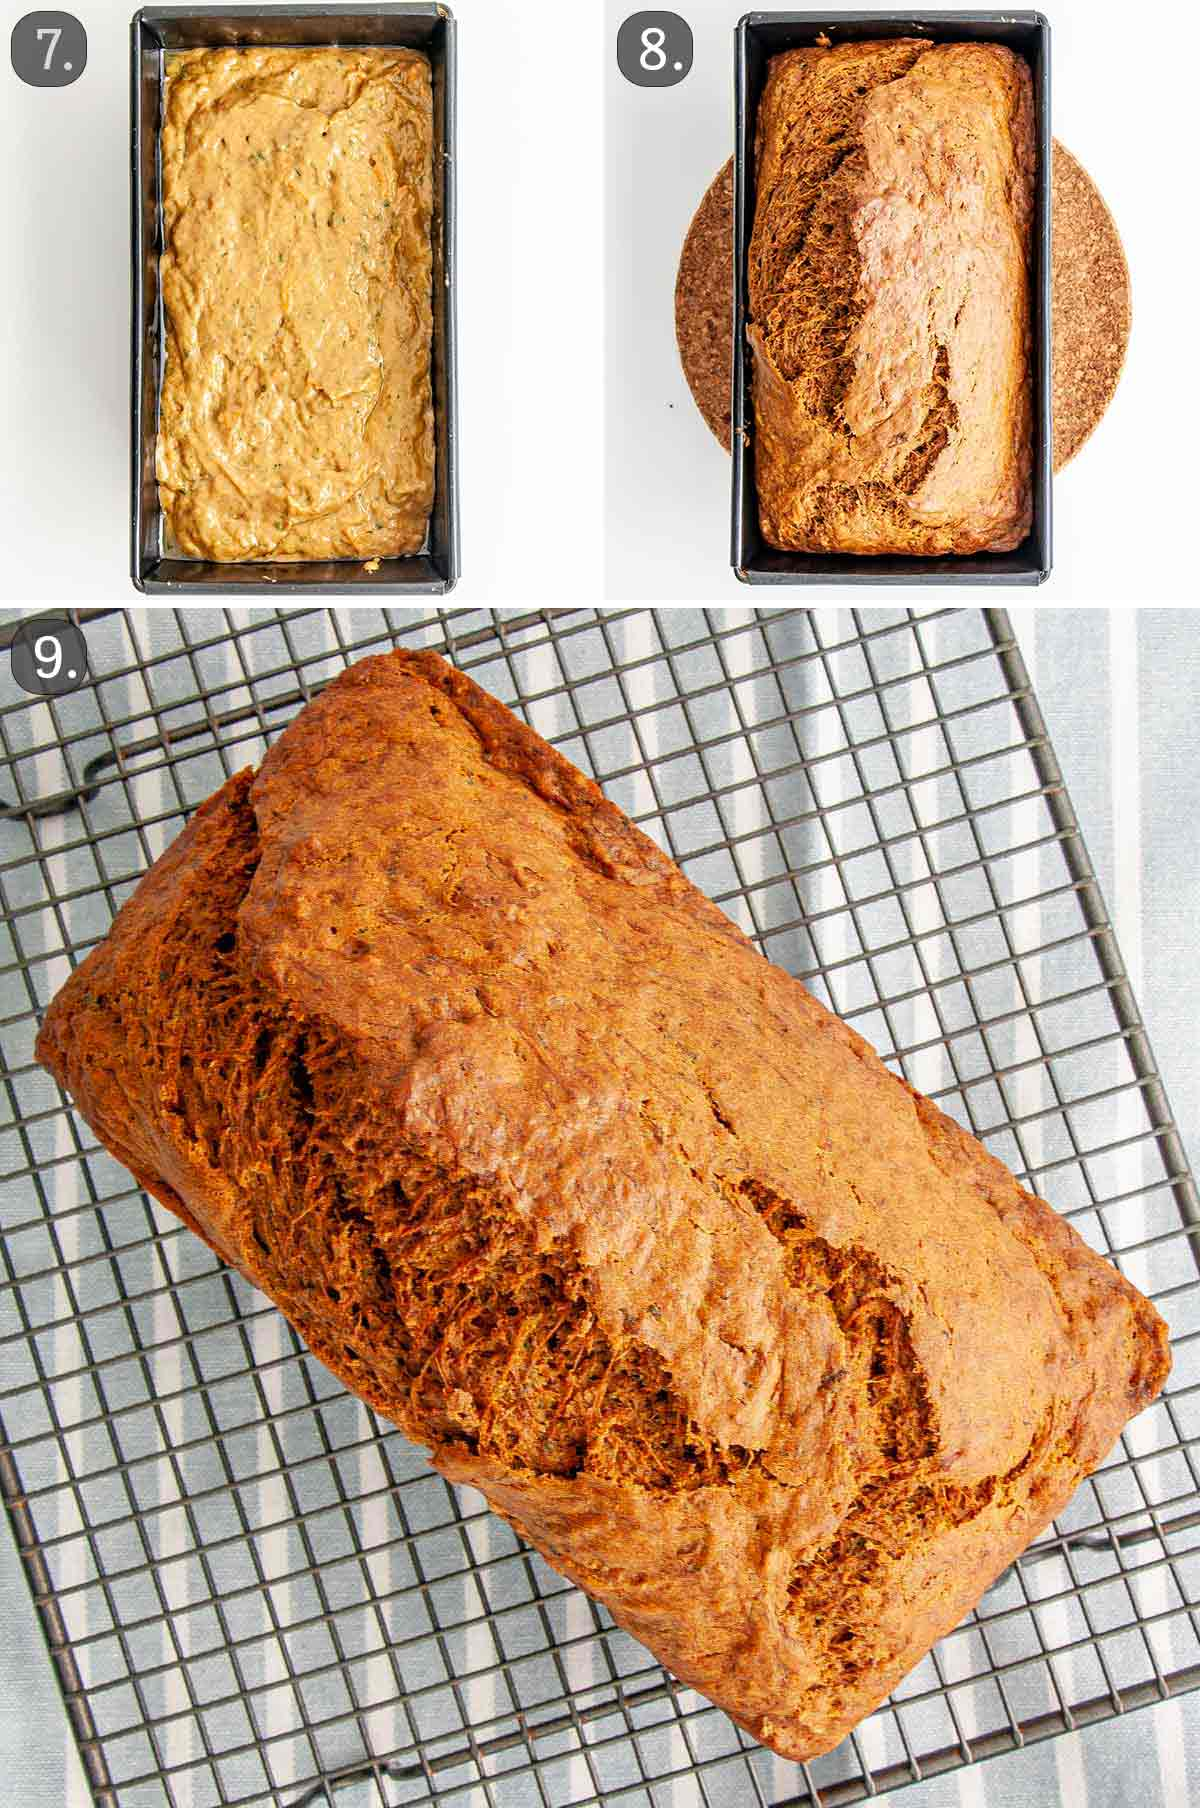 zucchini bread before and after baking.